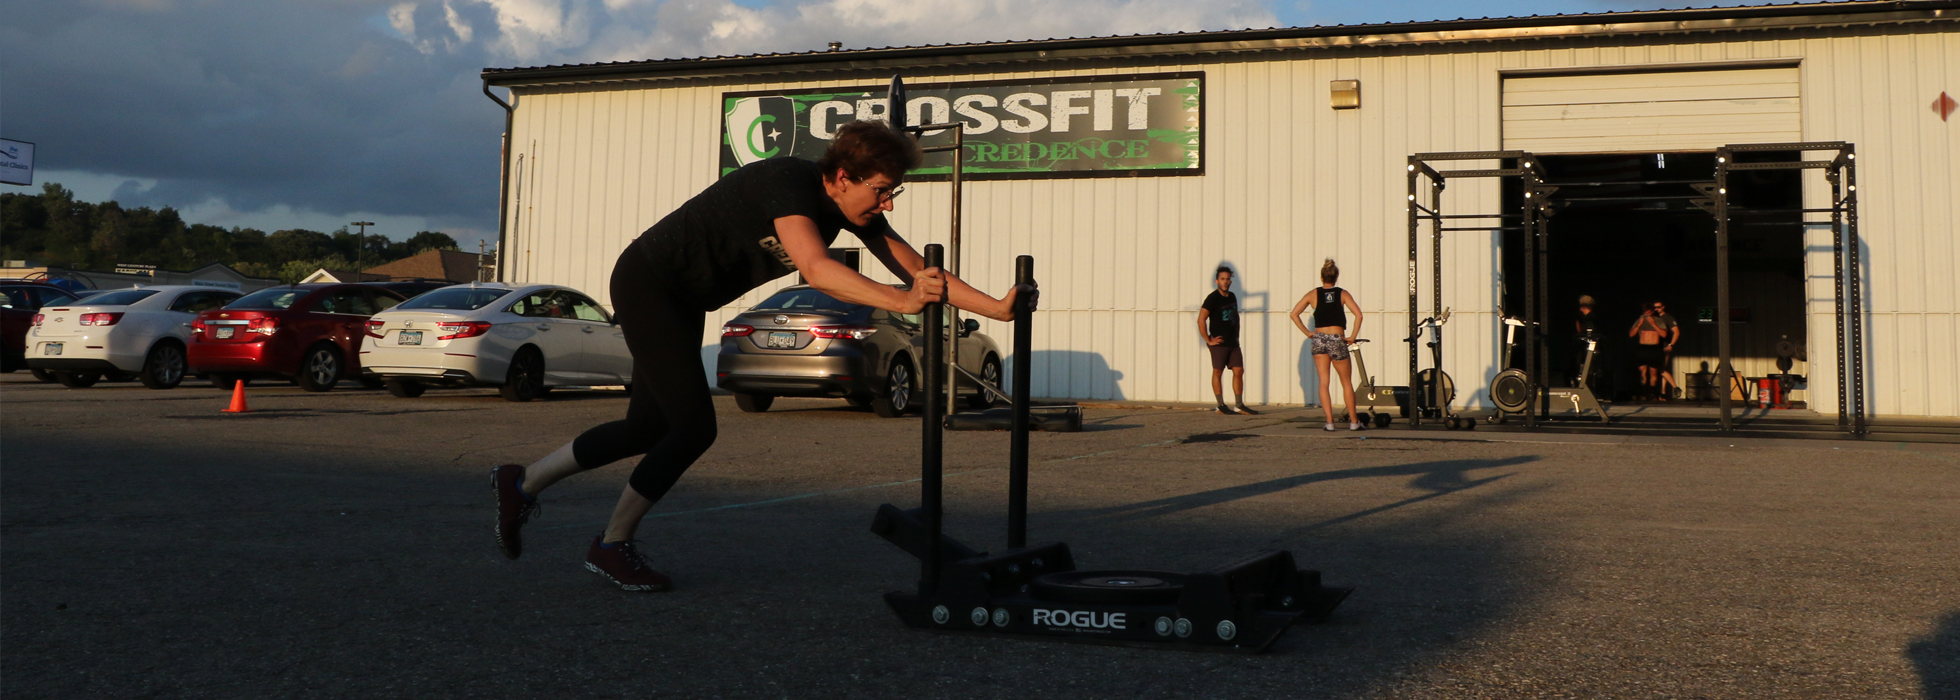 CrossFit Training and Classes in Rochester MN, CrossFit Training and Classes near Austin MN, CrossFit Training and Classes near Owatonna MN, CrossFit Training and Classes near Red Wing MN, CrossFit Training and Classes near Winona MN, CrossFit Training and Classes near Faribault MN, CrossFit Training and Classes near Northfield MN, CrossFit Training and Classes near Albert Lea MN, CrossFit Training and Classes near Hastings MN